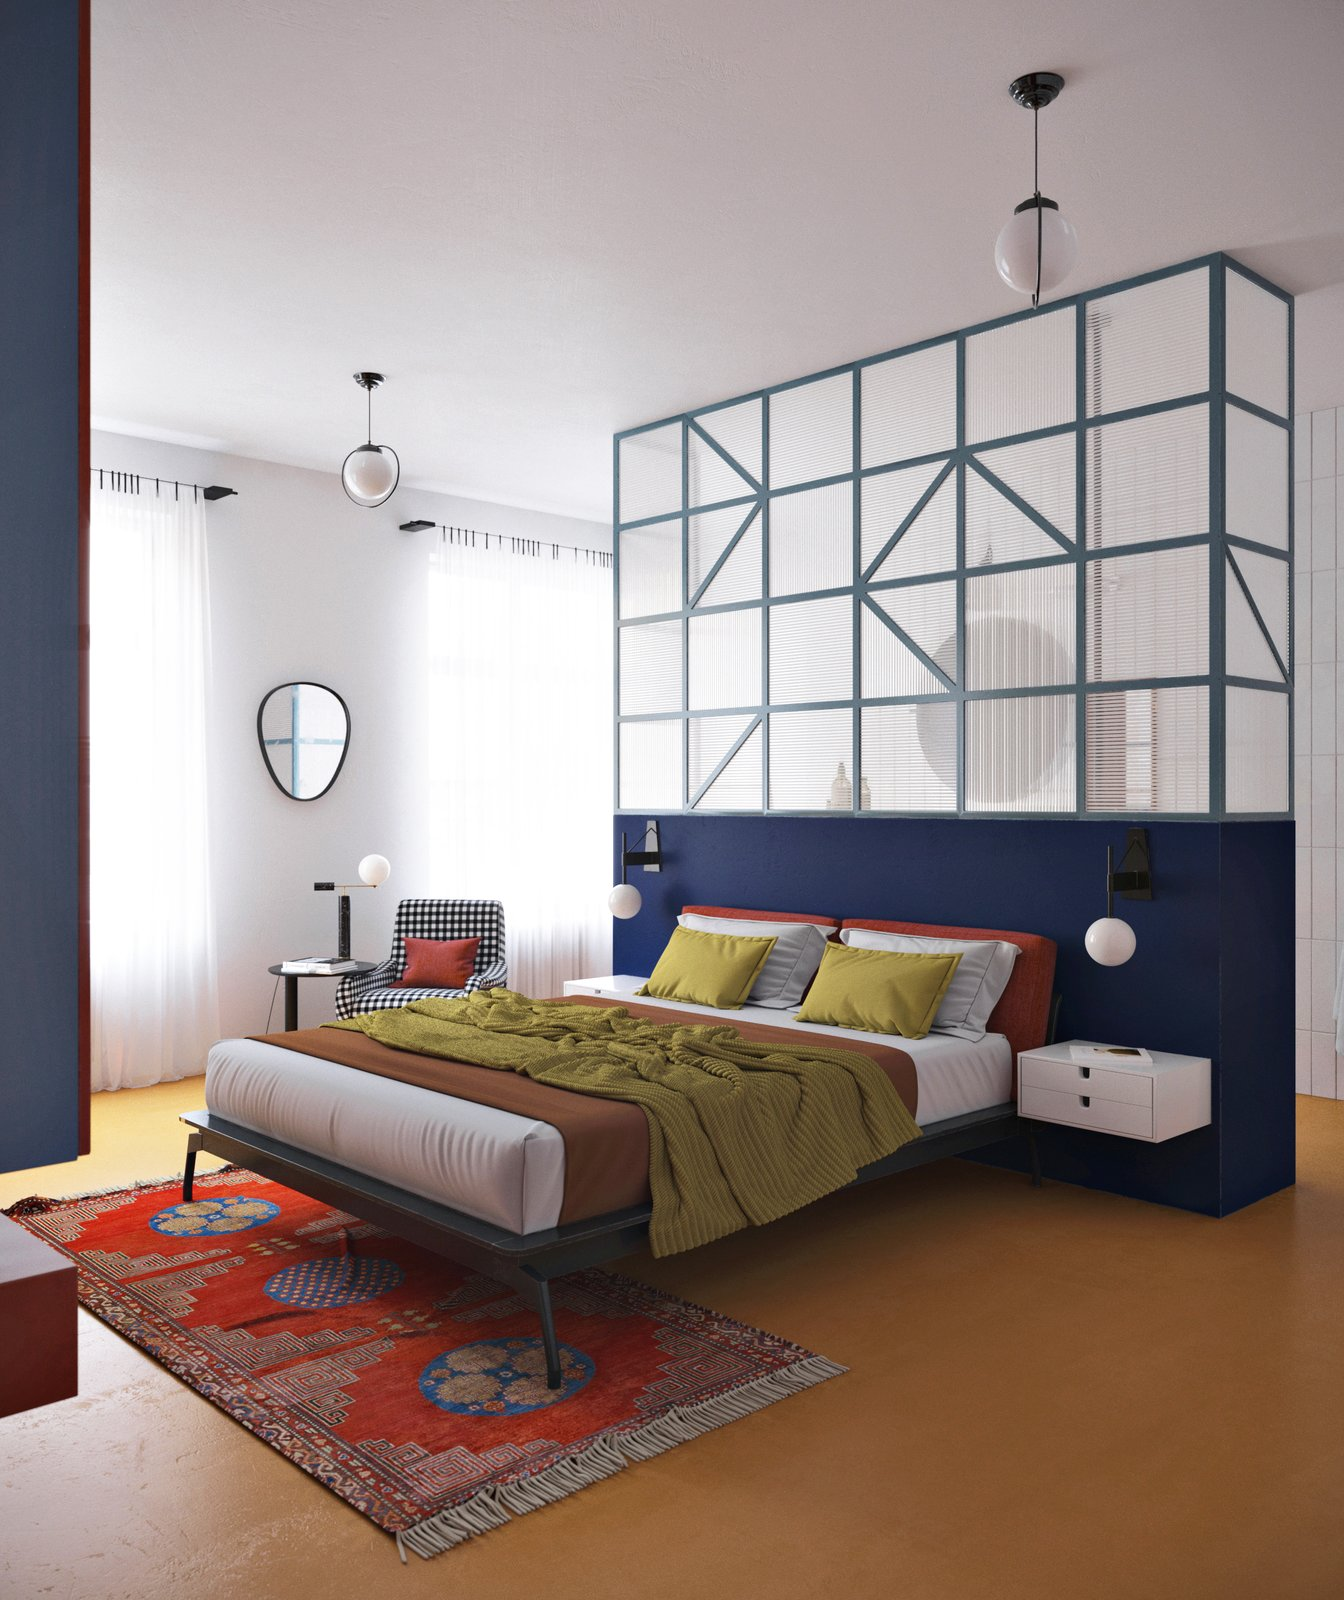 Bedroom, Rug, Wall, Night Stands, Concrete, Table, Bed, Pendant, Chair, and Lamps A look at the second zone of the home, which contains a custom-designed bed.  Best Bedroom Bed Concrete Wall Night Stands Photos from Bright Colors Meet Bold Patterns in This Compact Oslo Abode